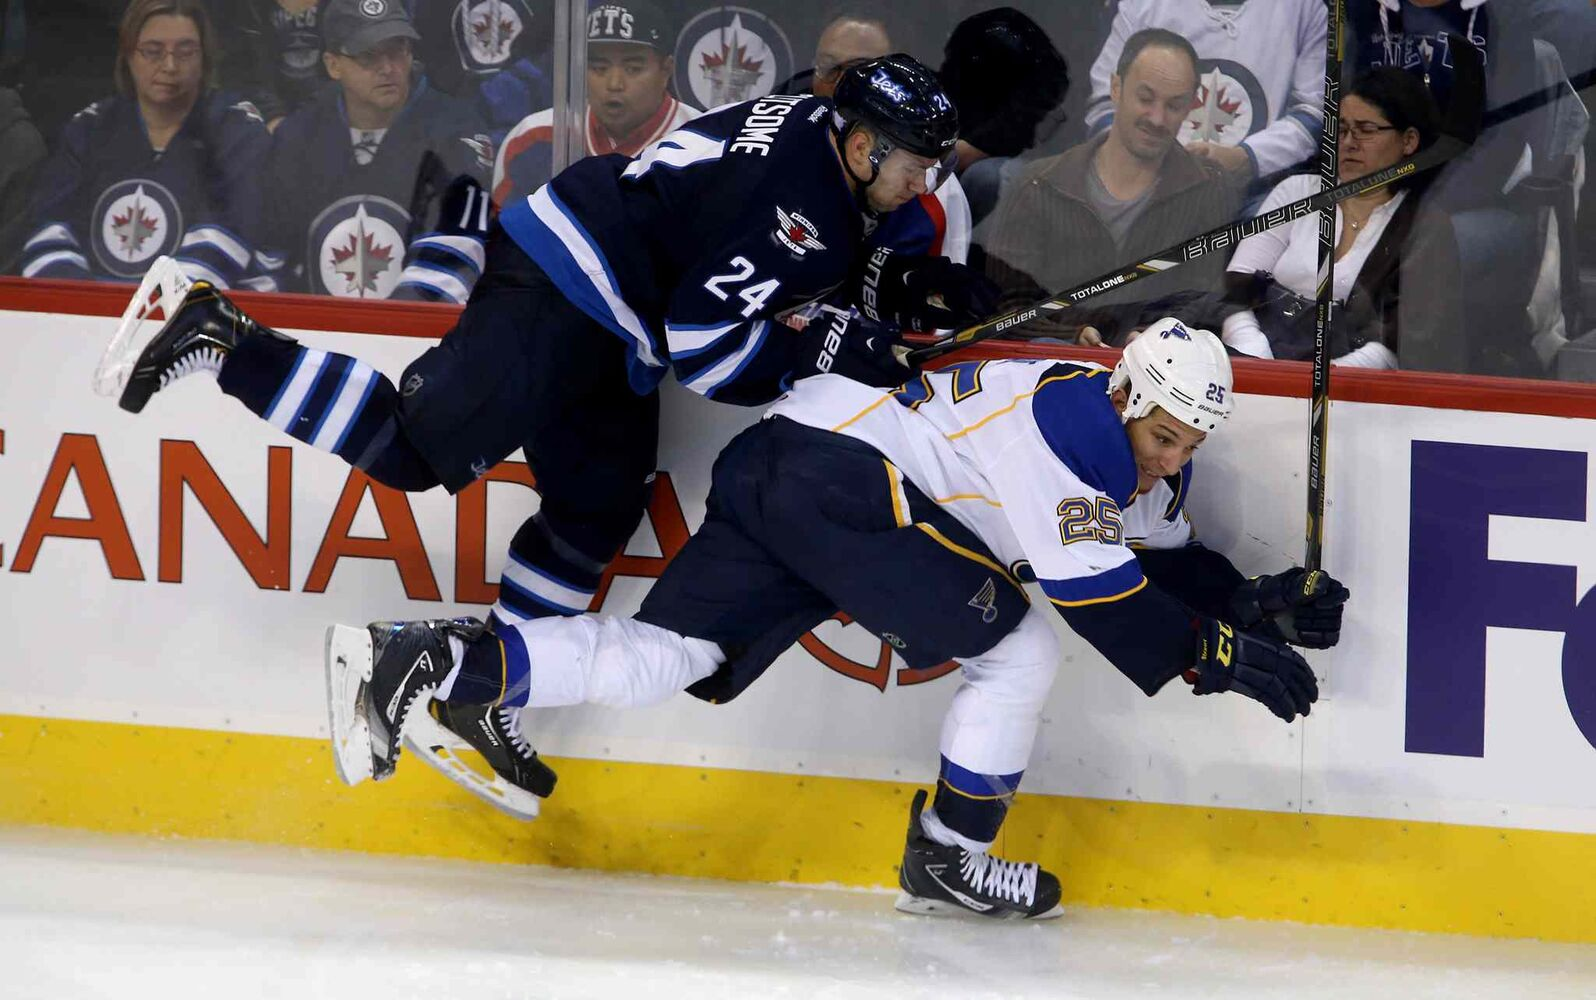 Winnipeg Jets defenceman Grant Clitsome collides with St. Louis Blues' Chris Stewart during the third period. (TREVOR HAGAN / WINNIPEG FREE PRESS)